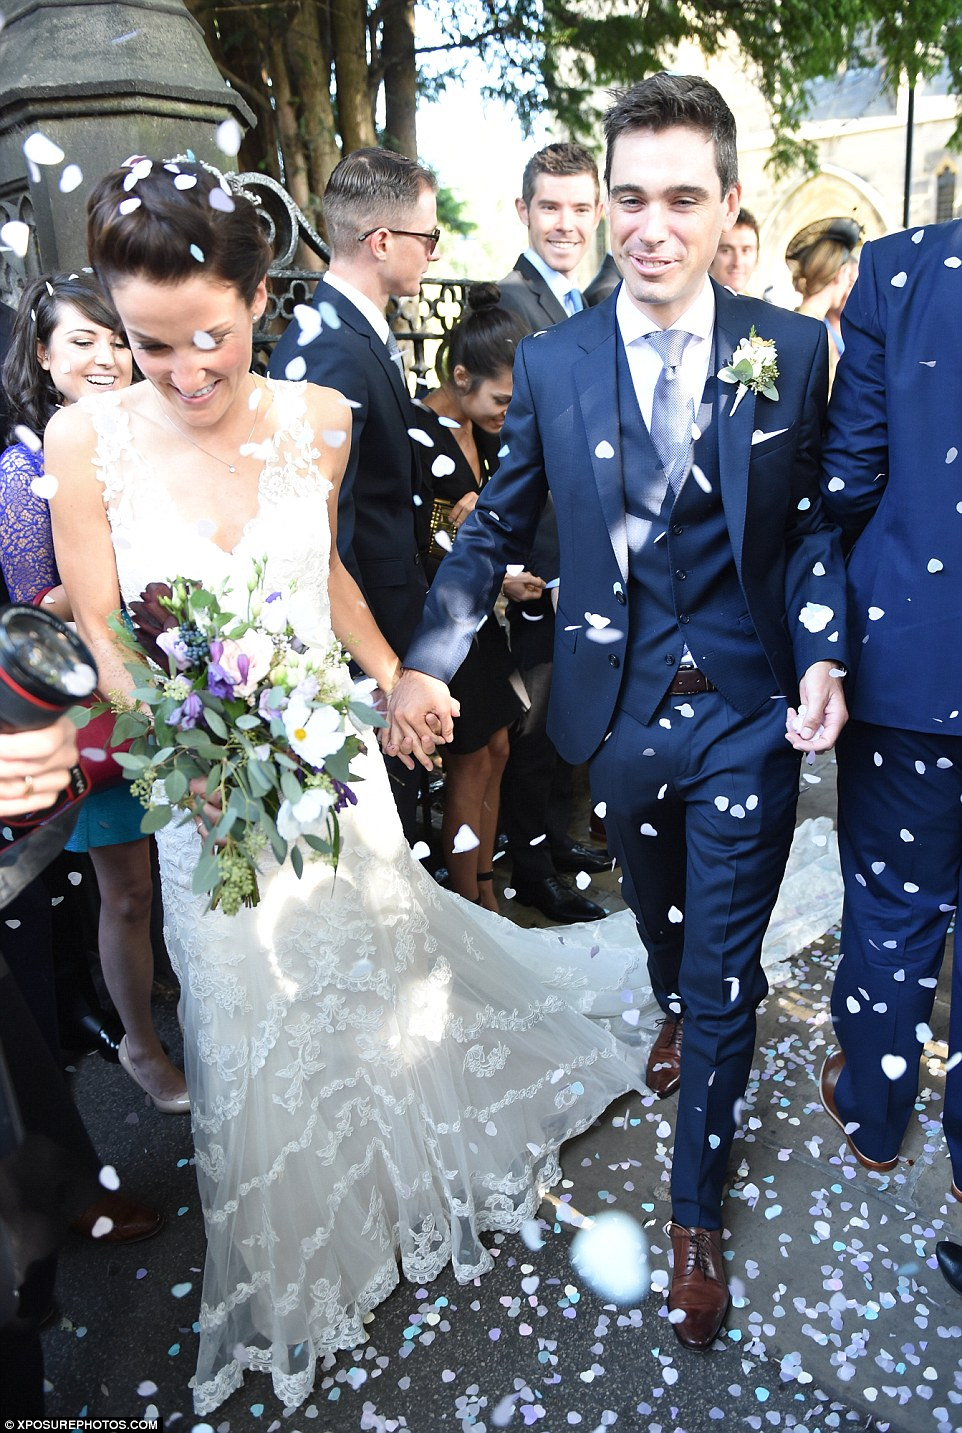 Olympic Cyclist Lizzie Armitstead Marries Fellow Racer